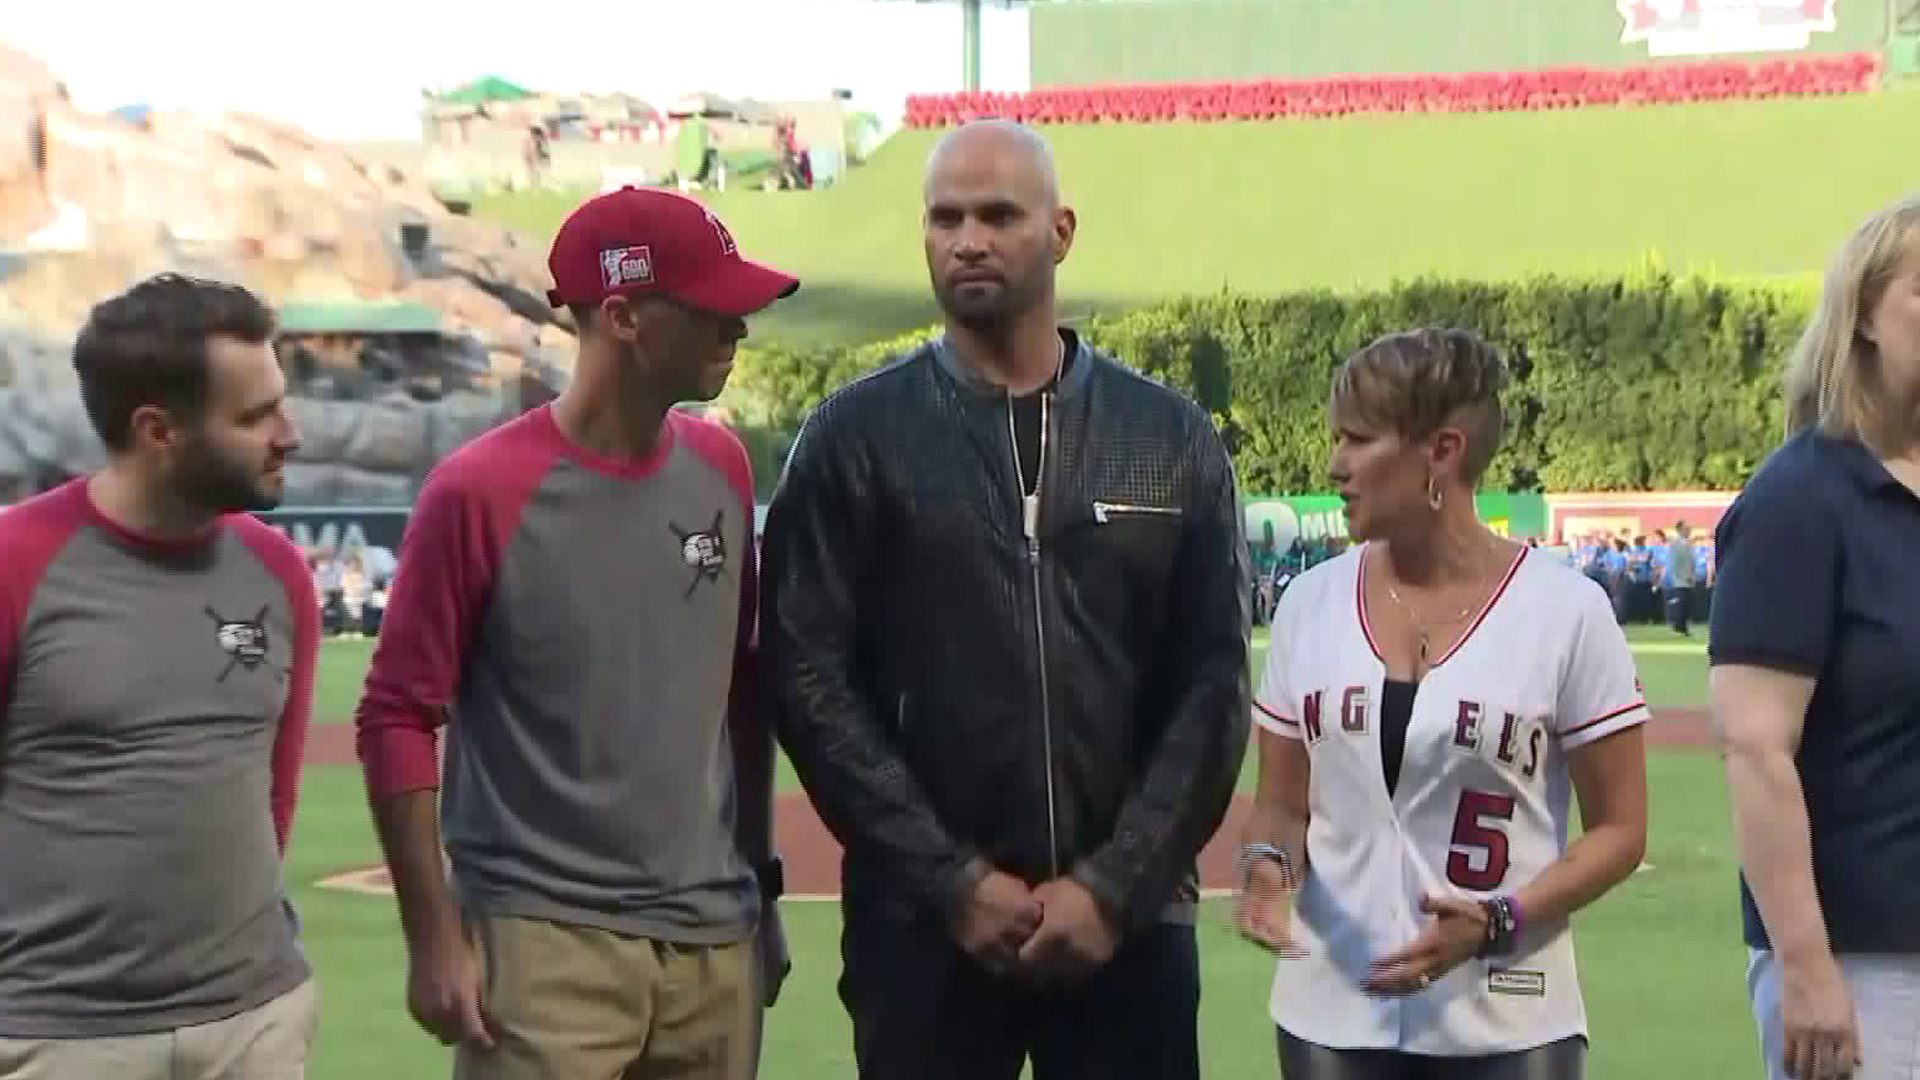 """The founders of anti-human trafficking organization """"Strike Out Slavery,"""" Los Angeles Angels Baseman Albert Pujols and his wife, Deidre, stand alongside other organizers during an event in Anaheim on Sept. 15, 2018. (Credit: KTLA)"""